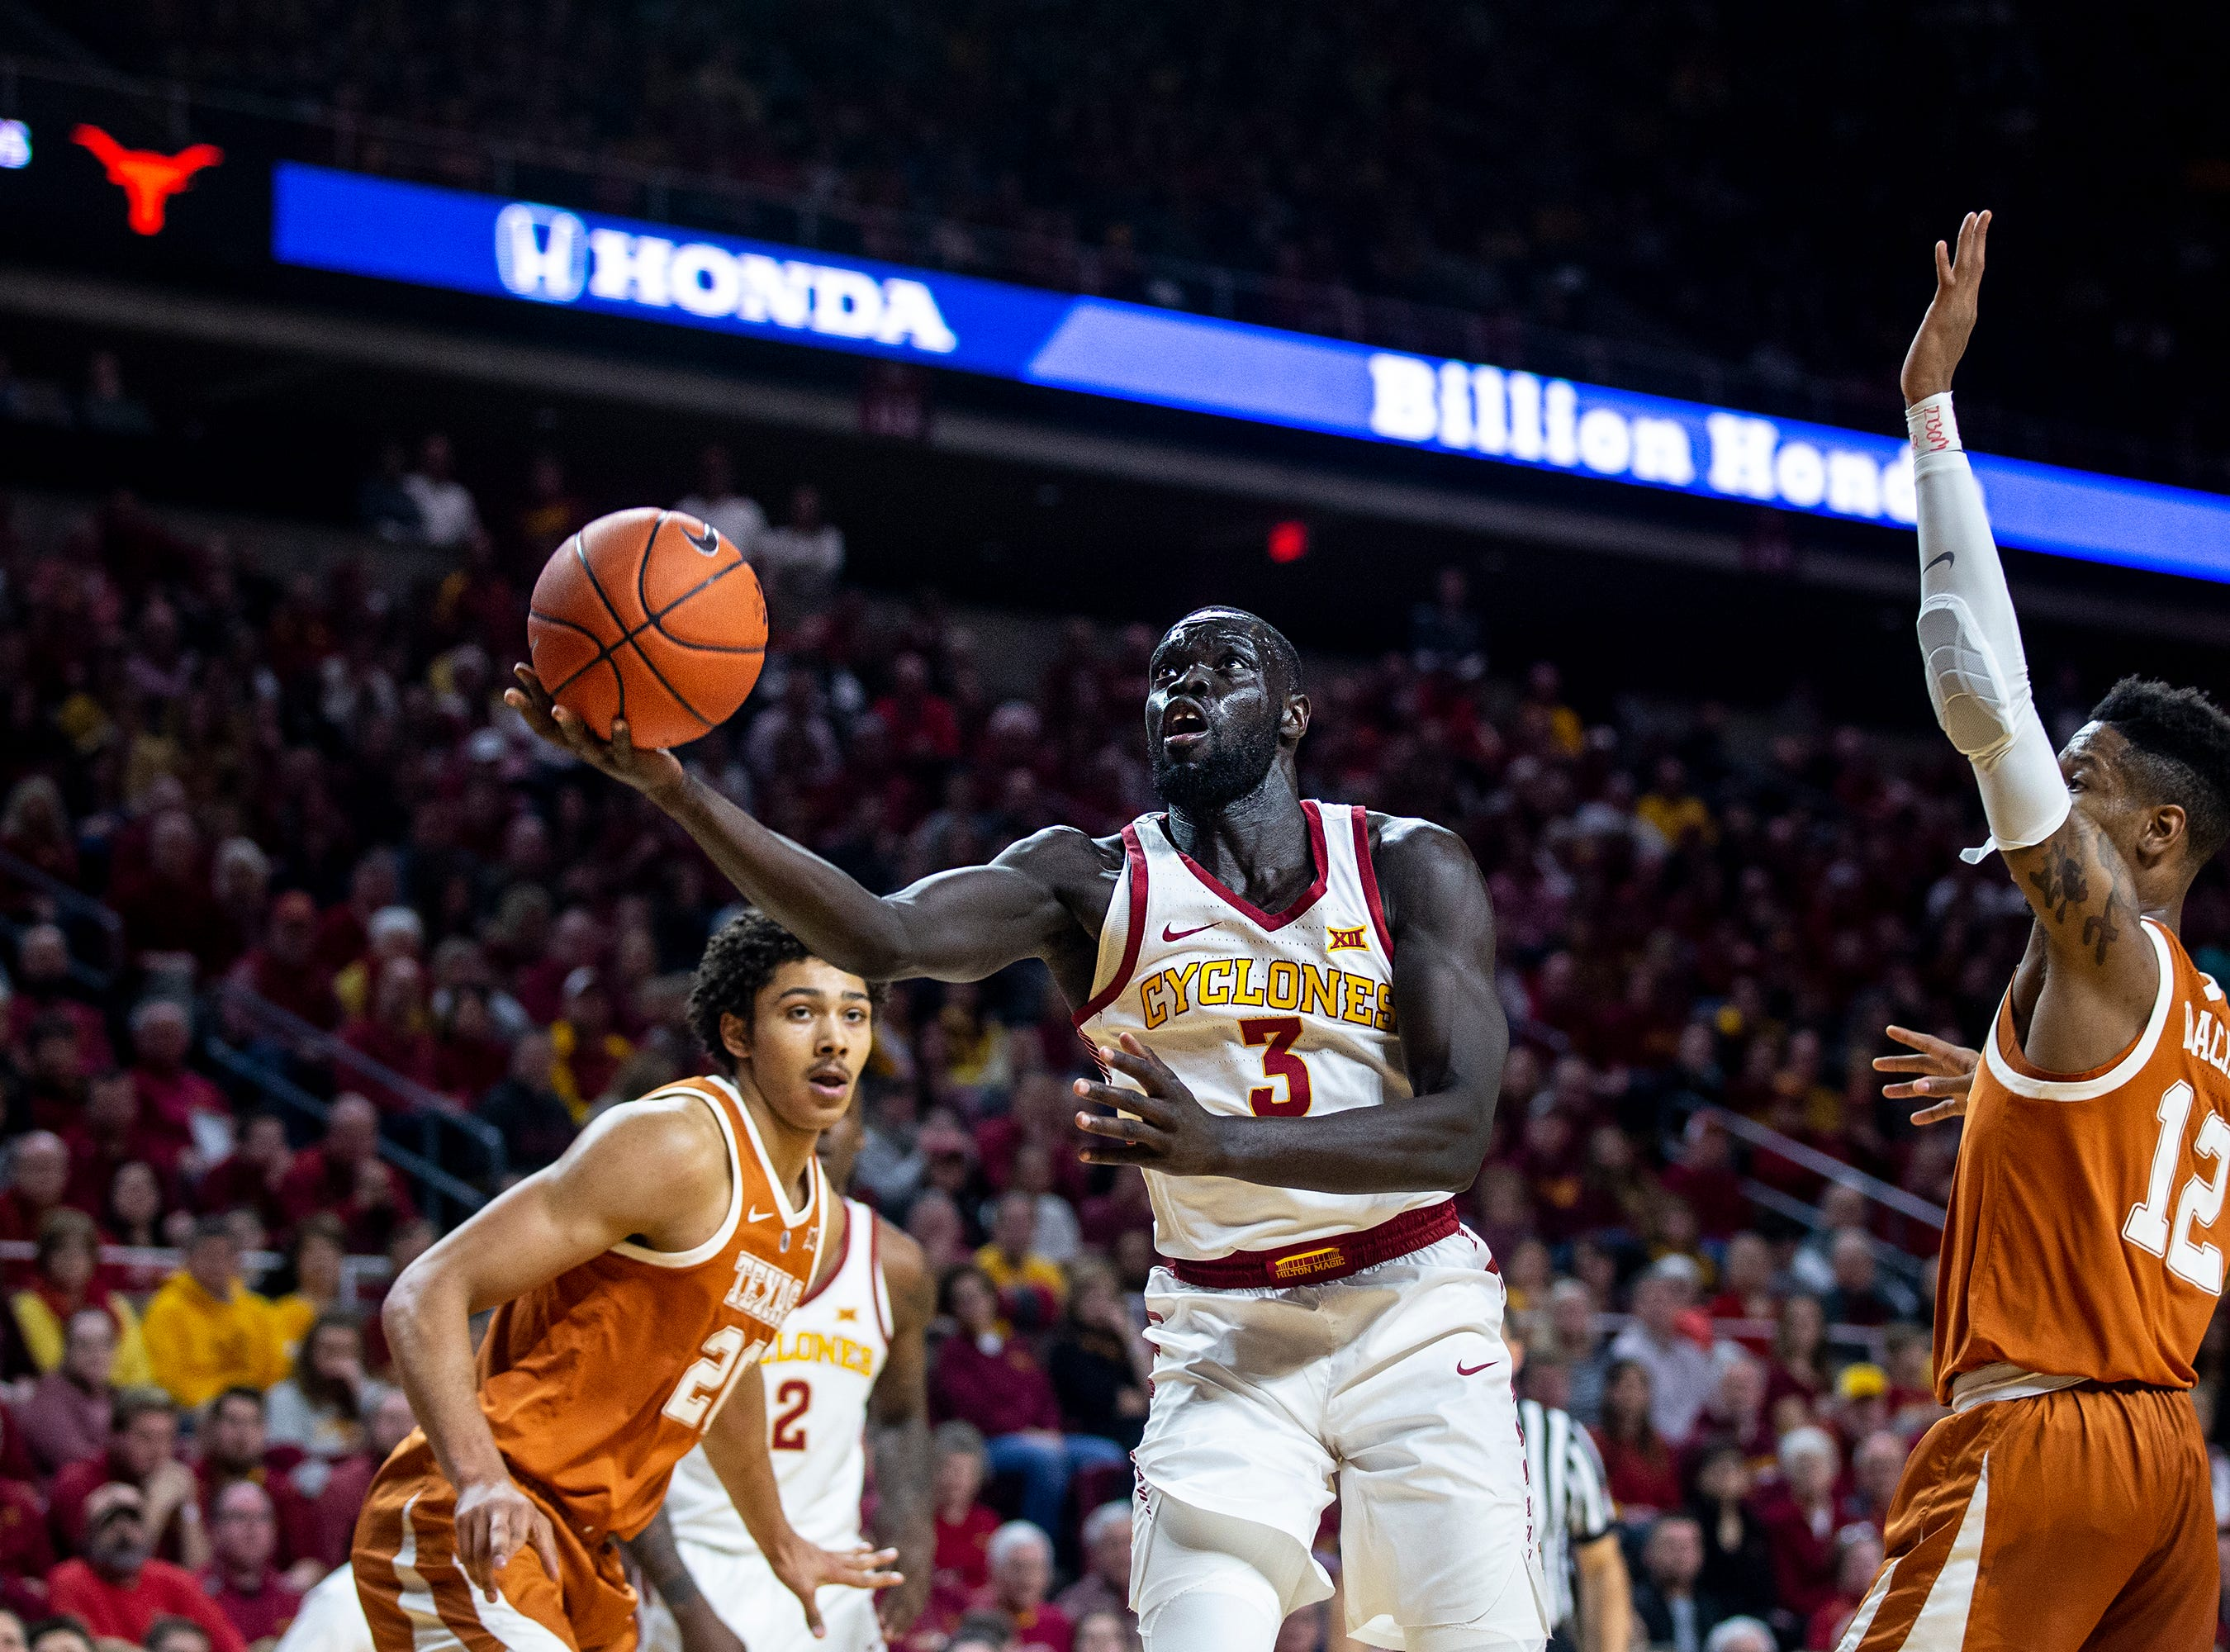 Iowa State's Marial Shayok shoots the ball during the Iowa State men's basketball game against Texas on Saturday, Feb. 2, 2019, in Hilton Coliseum.